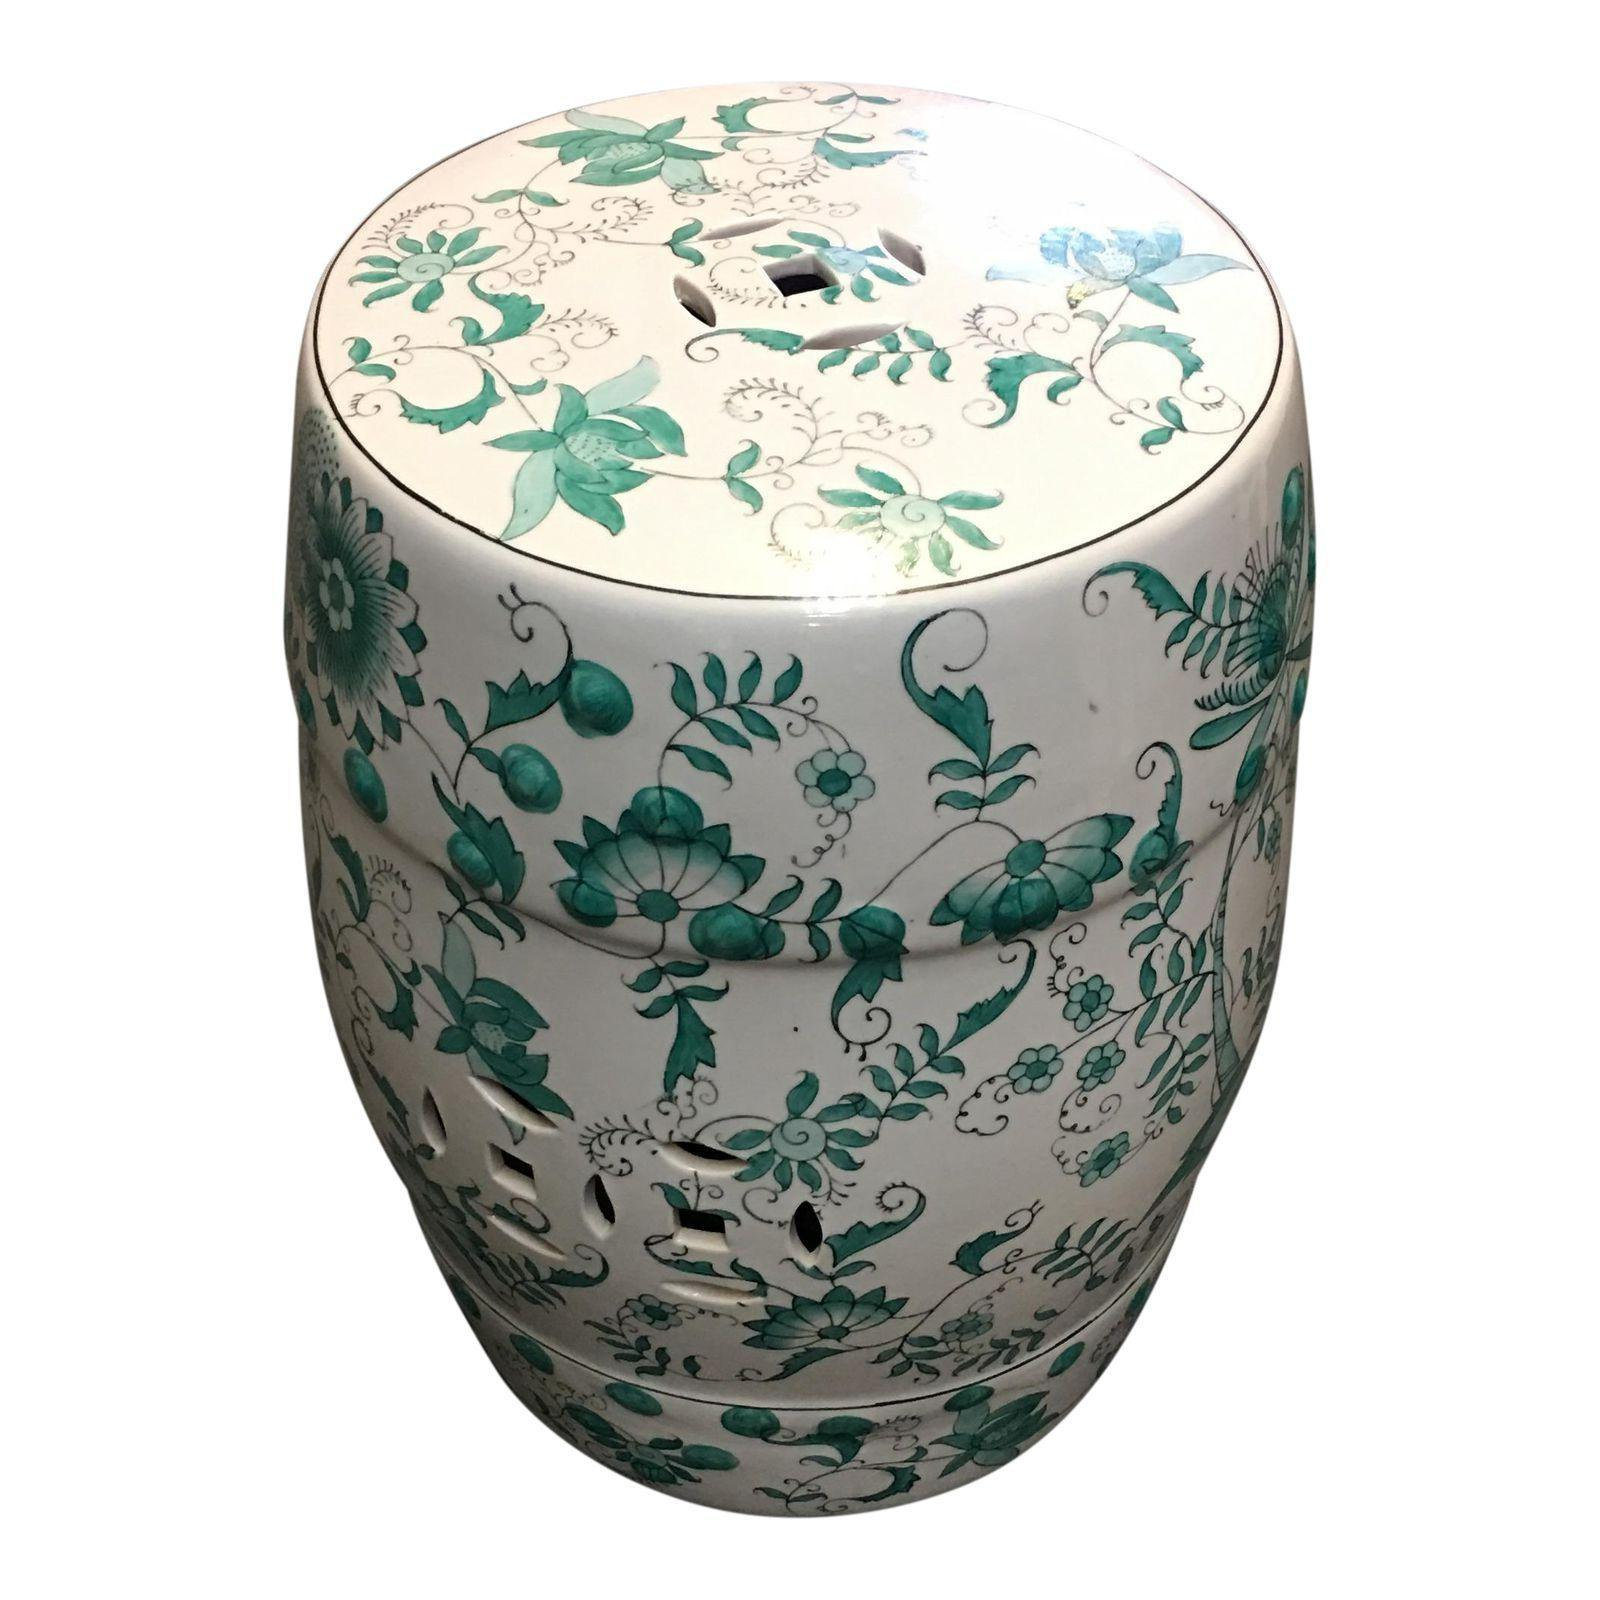 Chinese Green White Garden Stool Design Plus